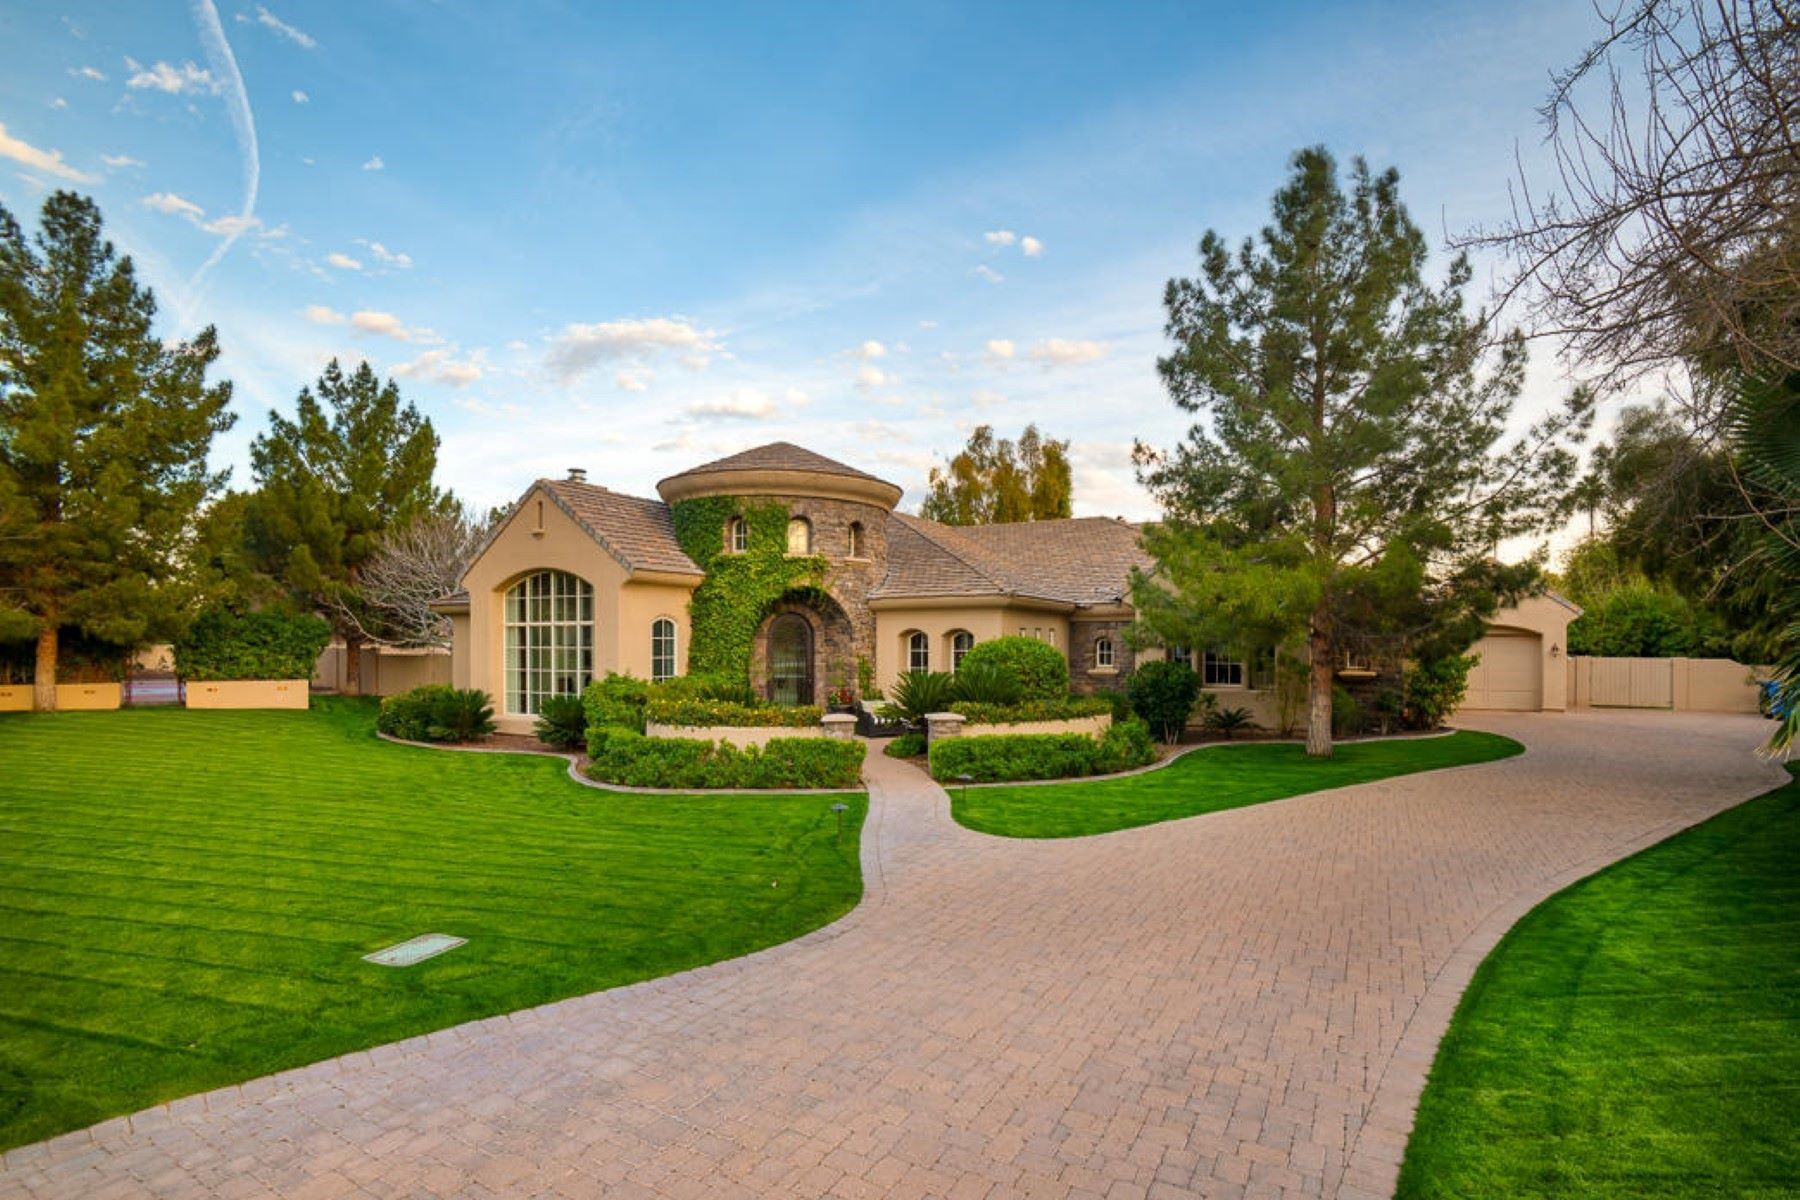 Single Family Homes for Active at Camelview 5421 E Montecito Ave Phoenix, Arizona 85018 United States